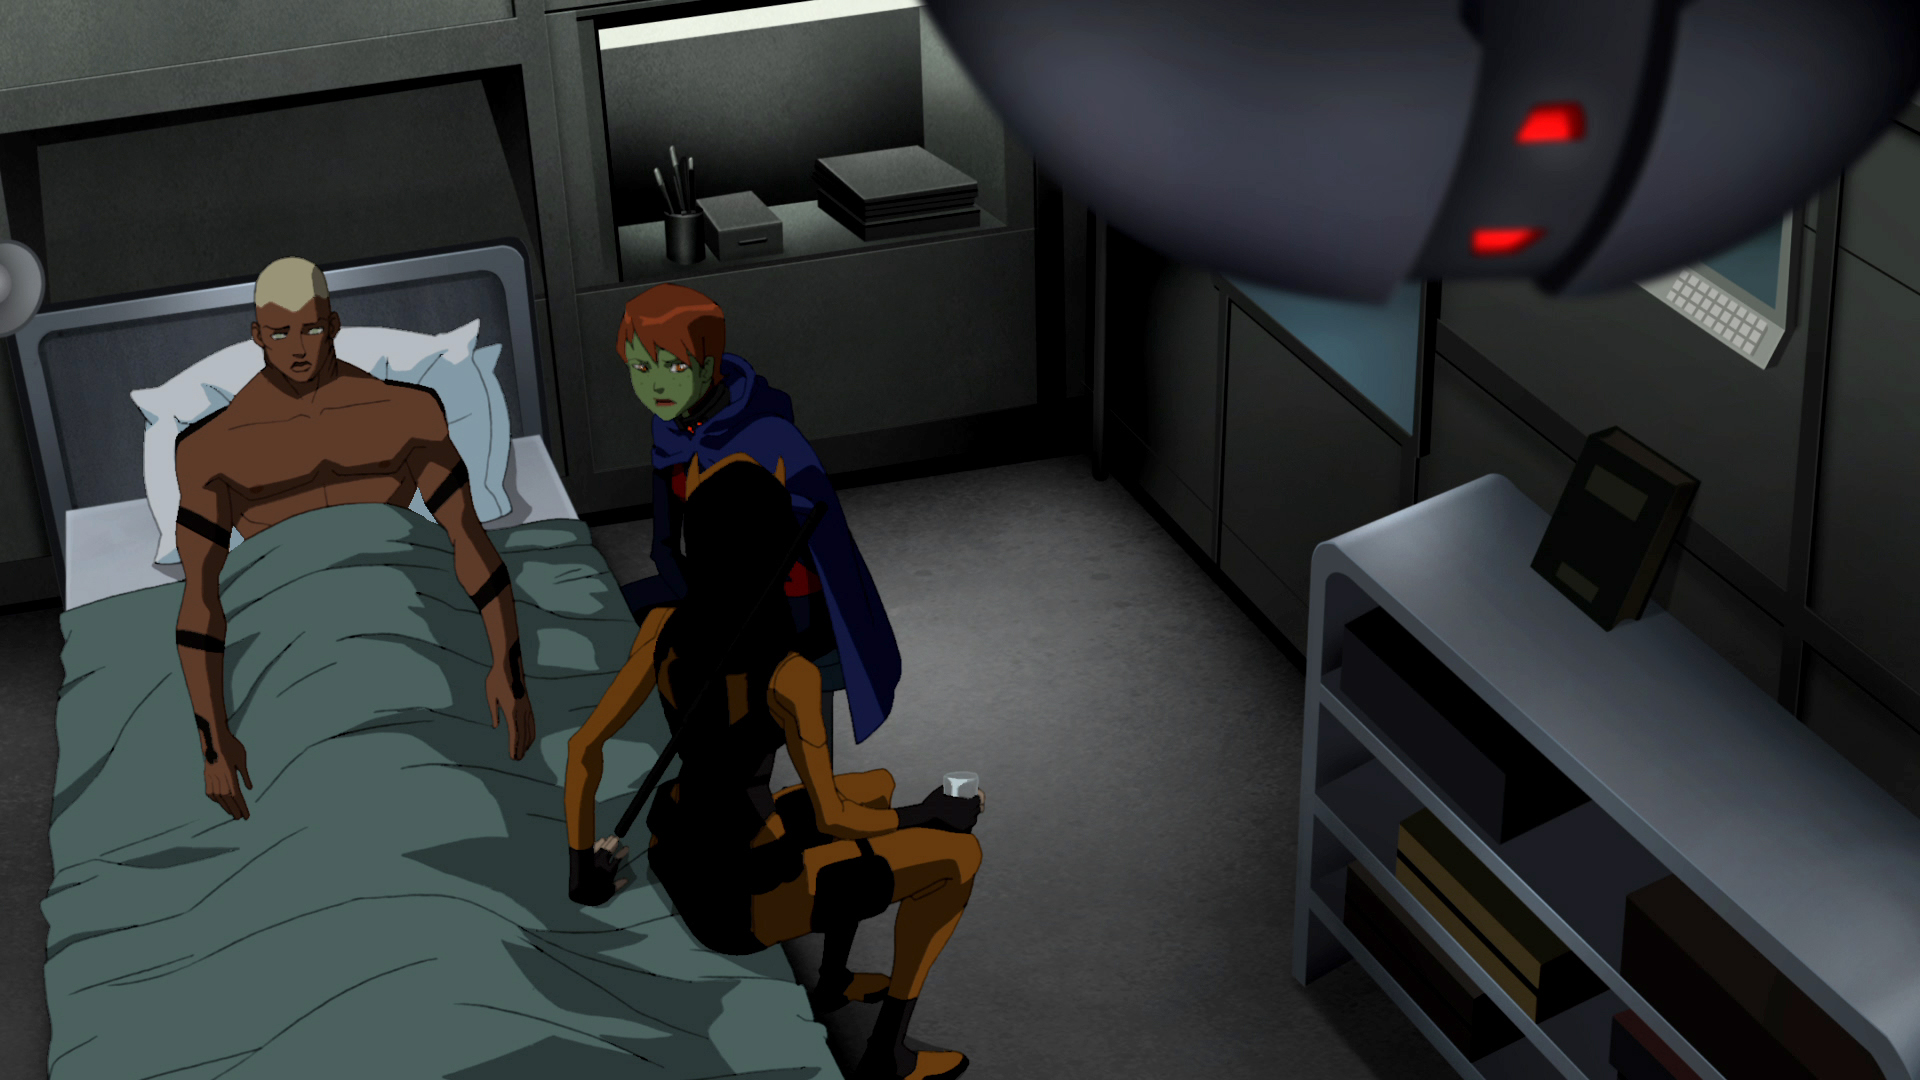 Young justice season 2 episode 16 complications